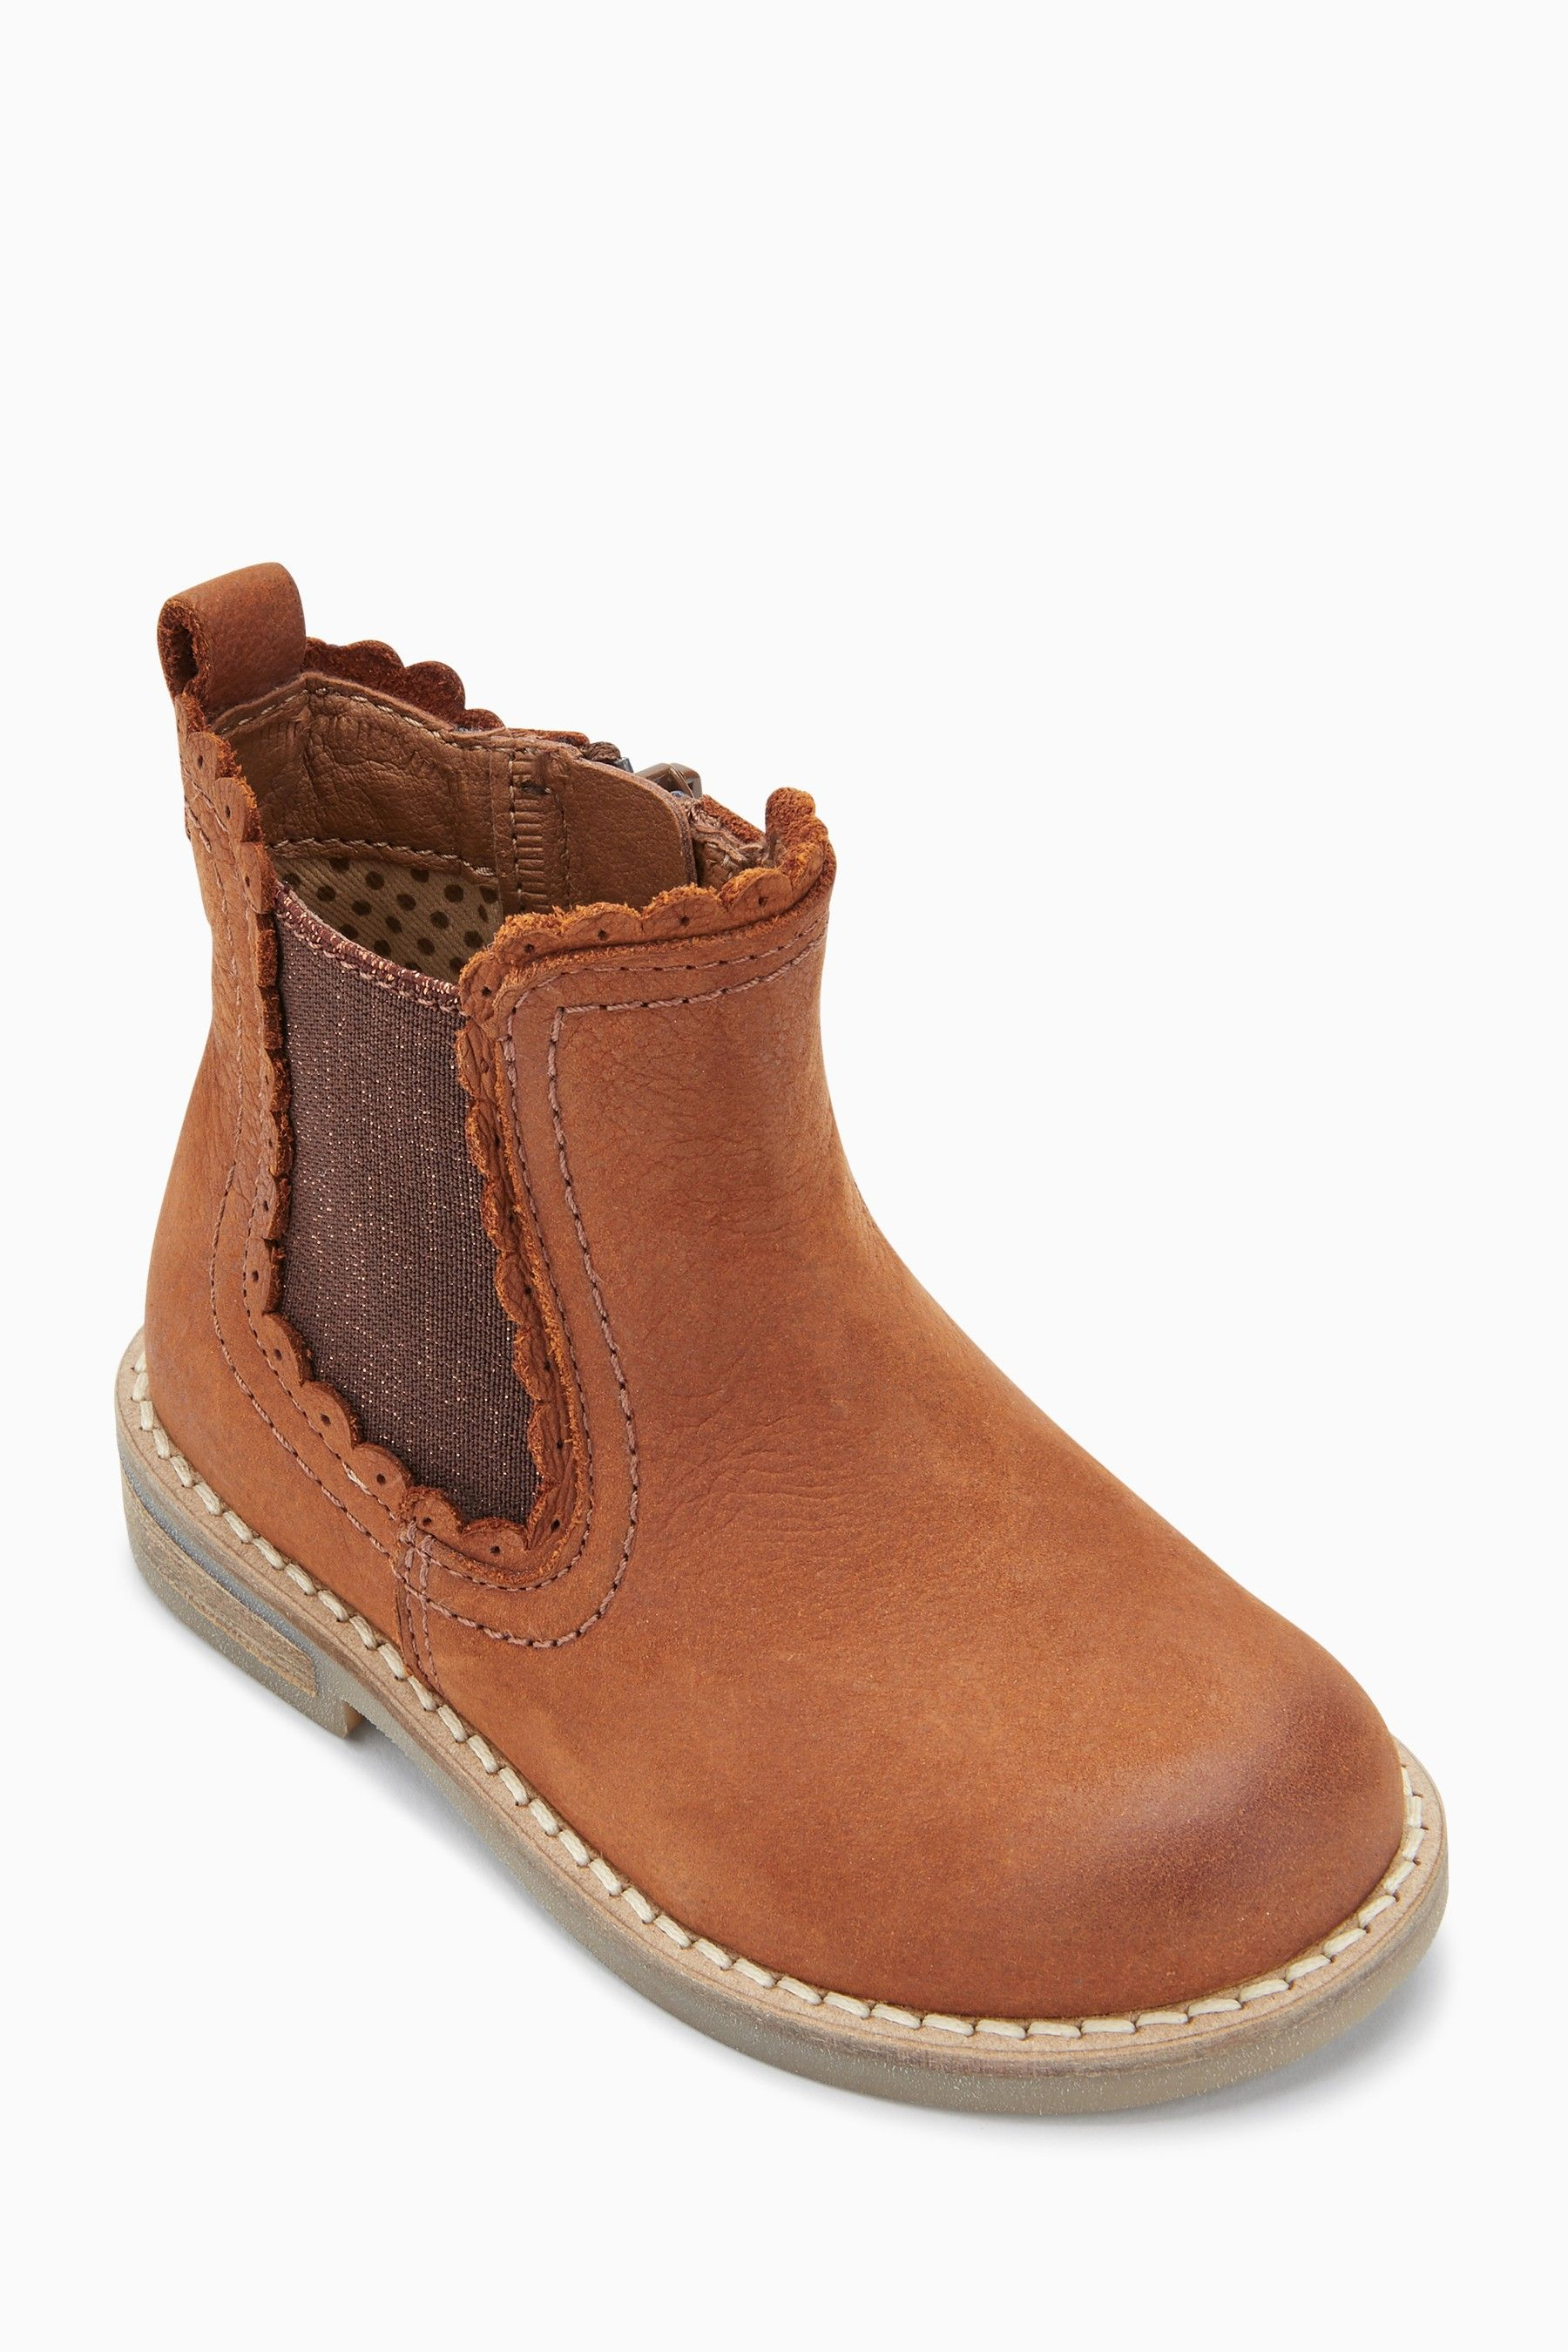 5e60ff62b Girls Next Tan Chelsea Boots (Younger) - Brown | Leah Autumn kramer ...